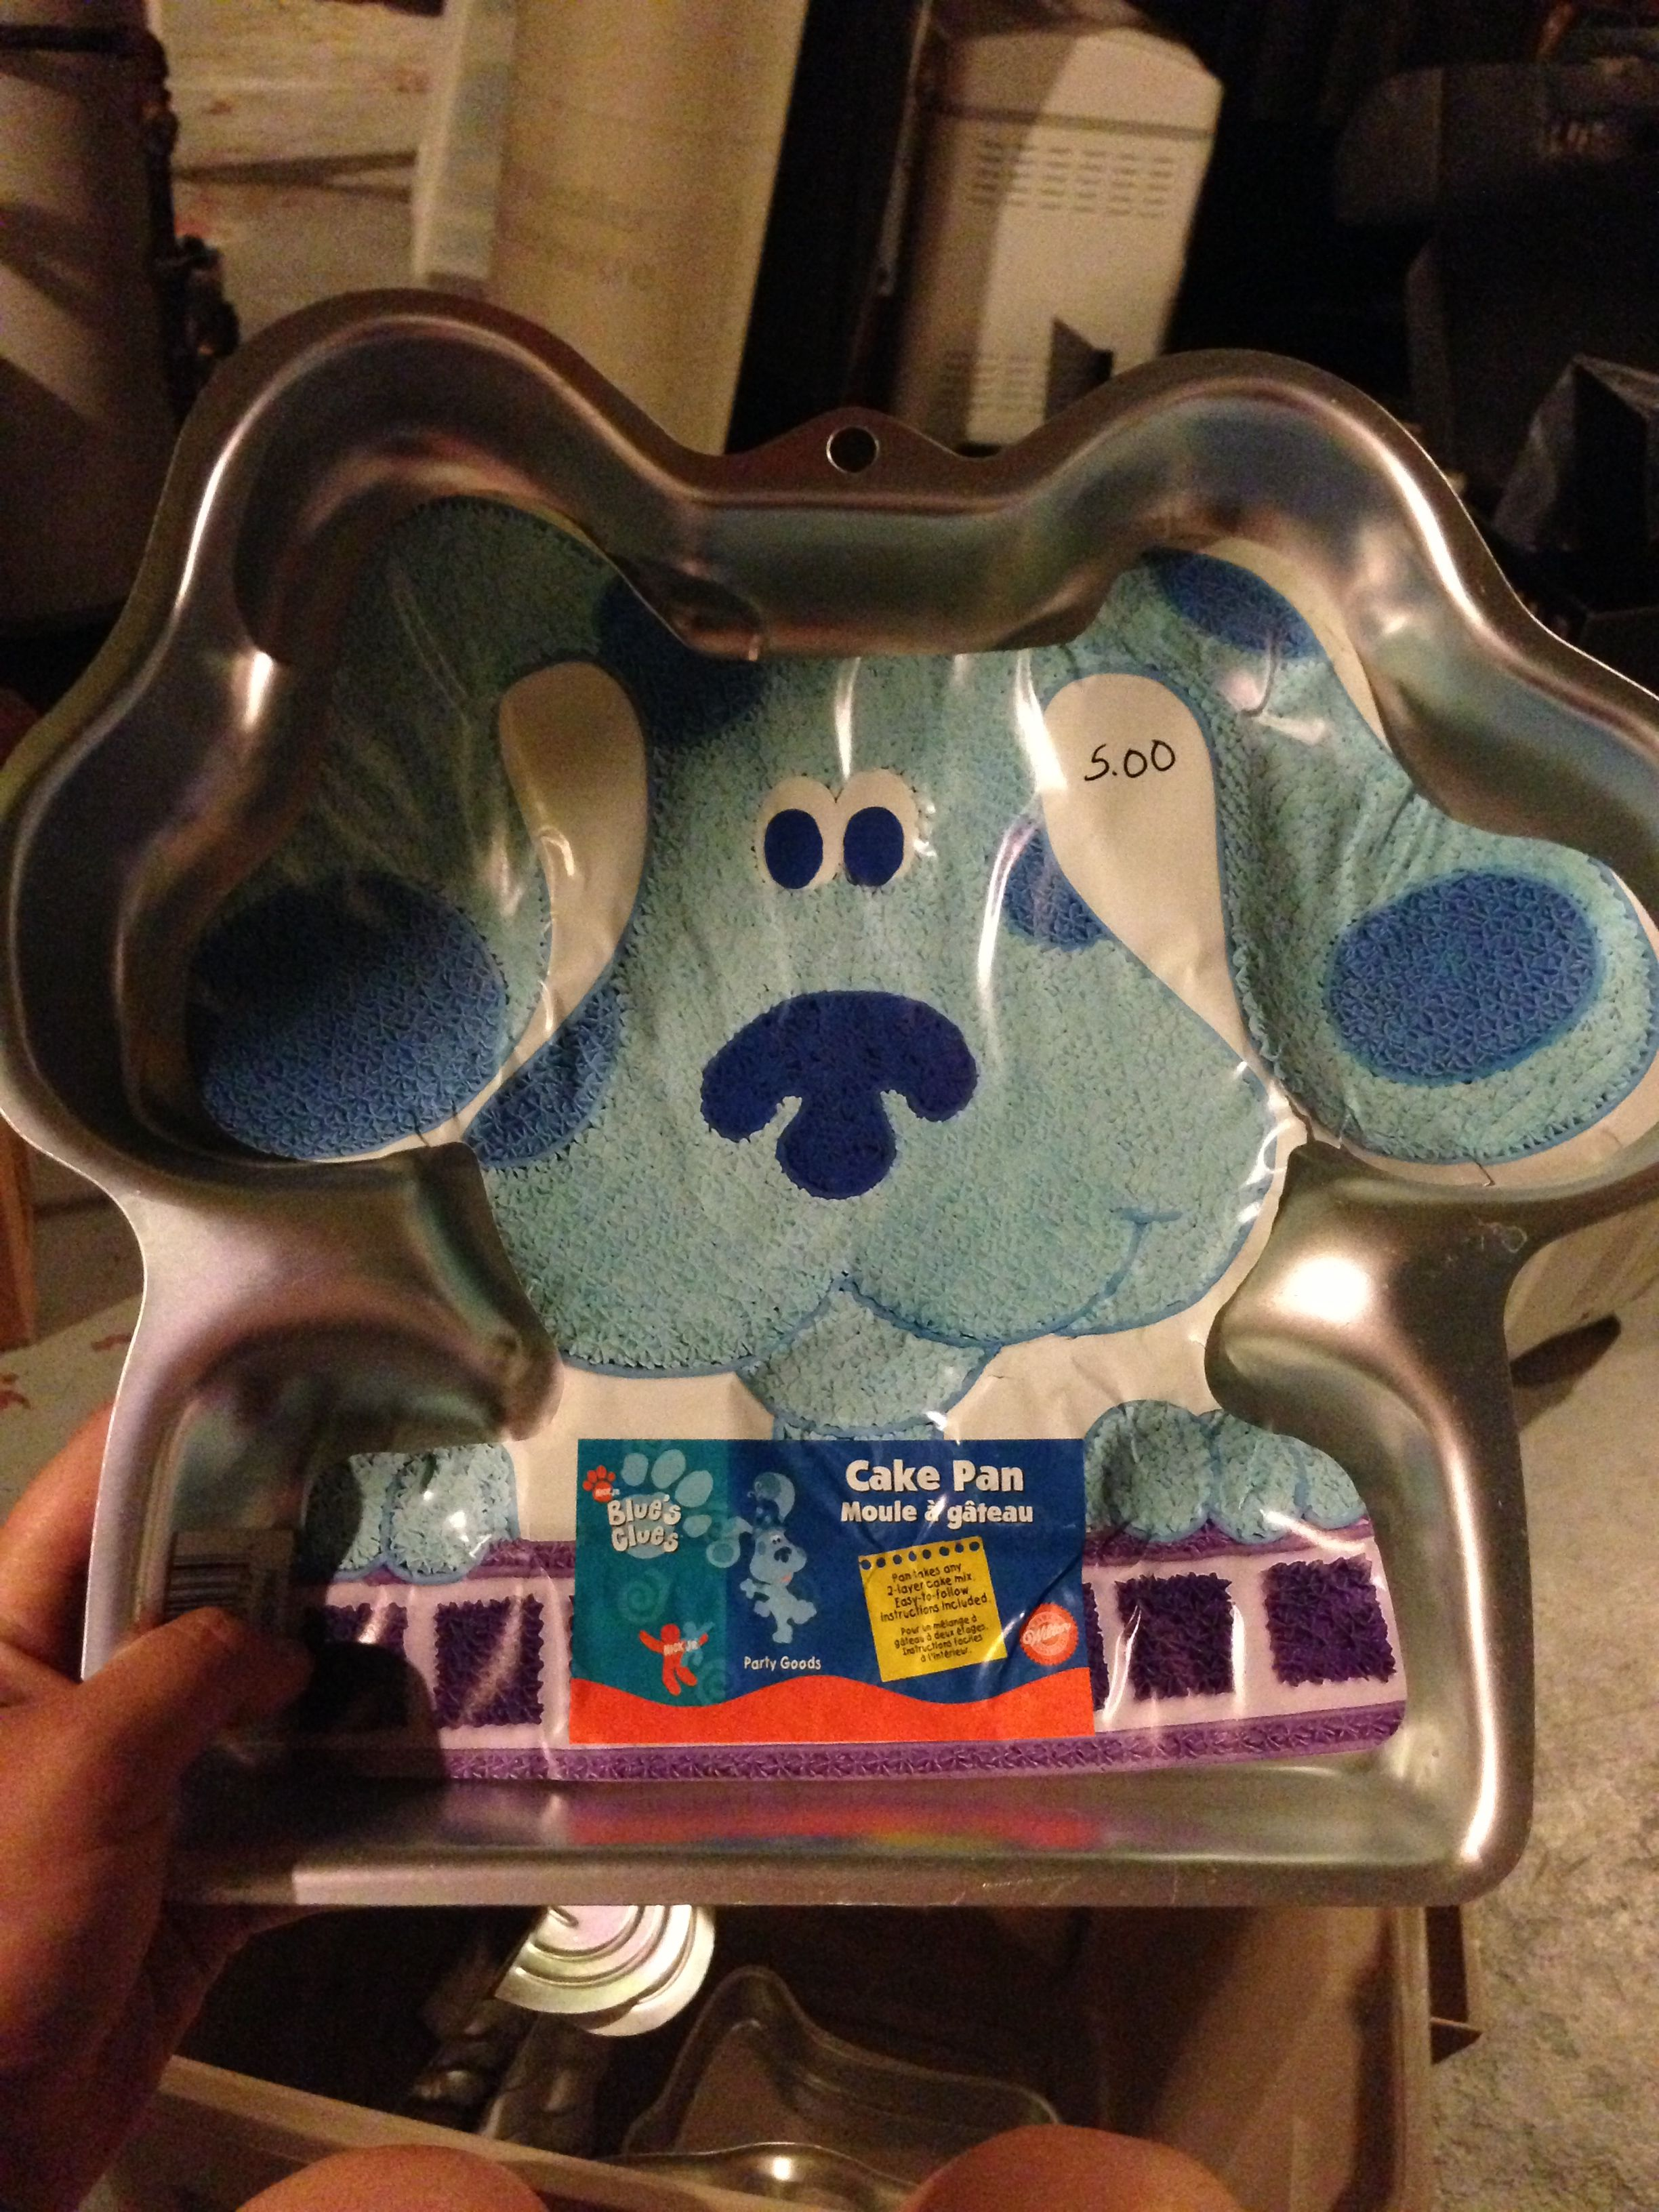 Blues clues pan